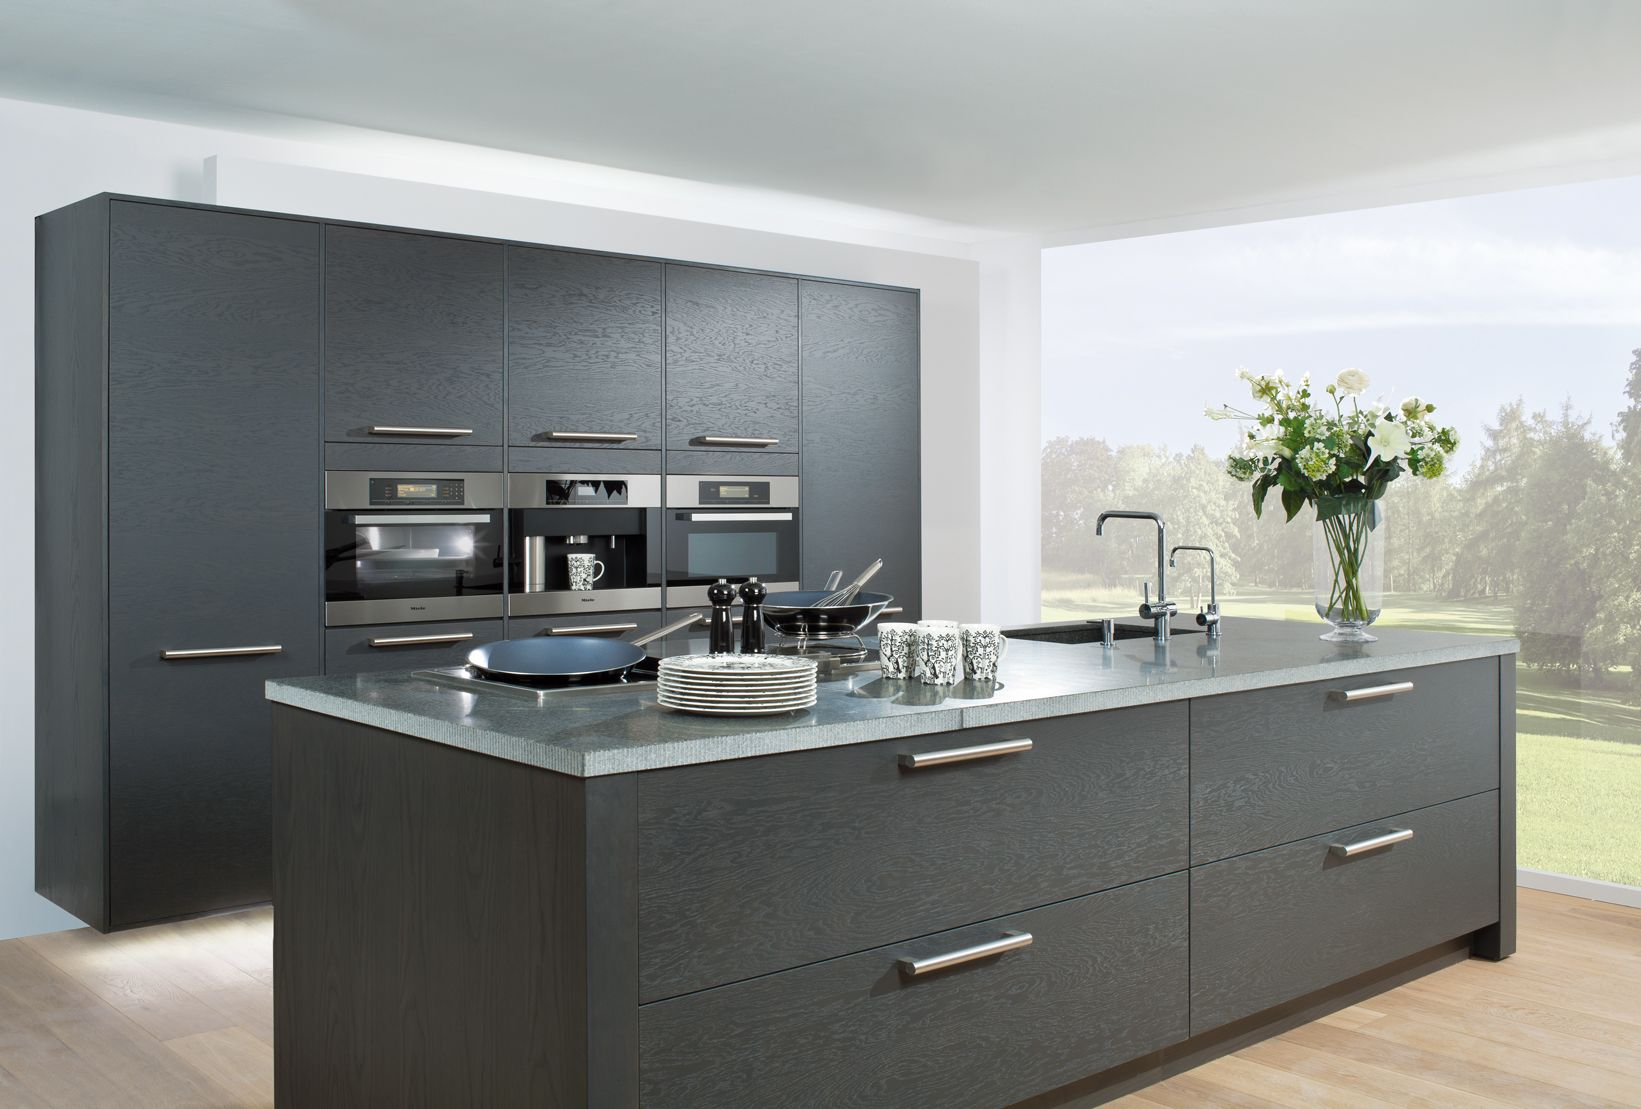 Best Alluring Grey Kitchen Design Inspirations Amazing Grey 640 x 480